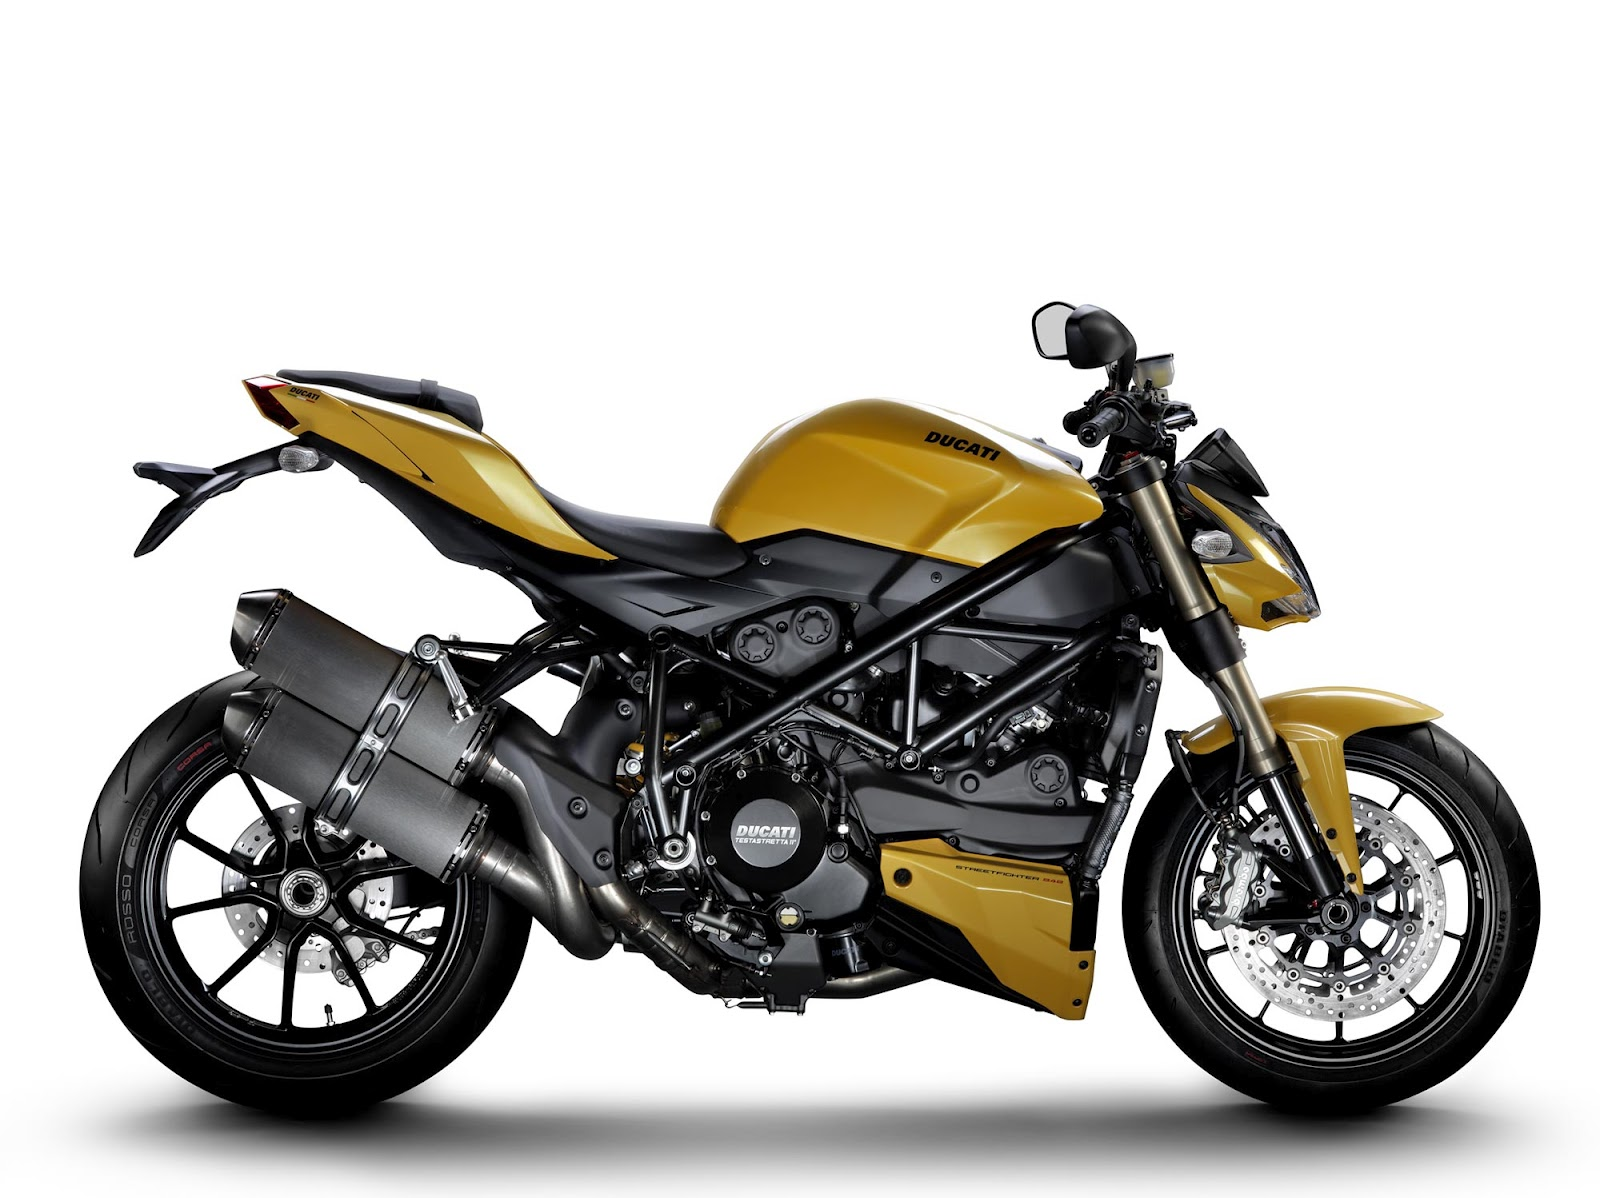 motorcycle posters ducati streetfighter 848. Black Bedroom Furniture Sets. Home Design Ideas